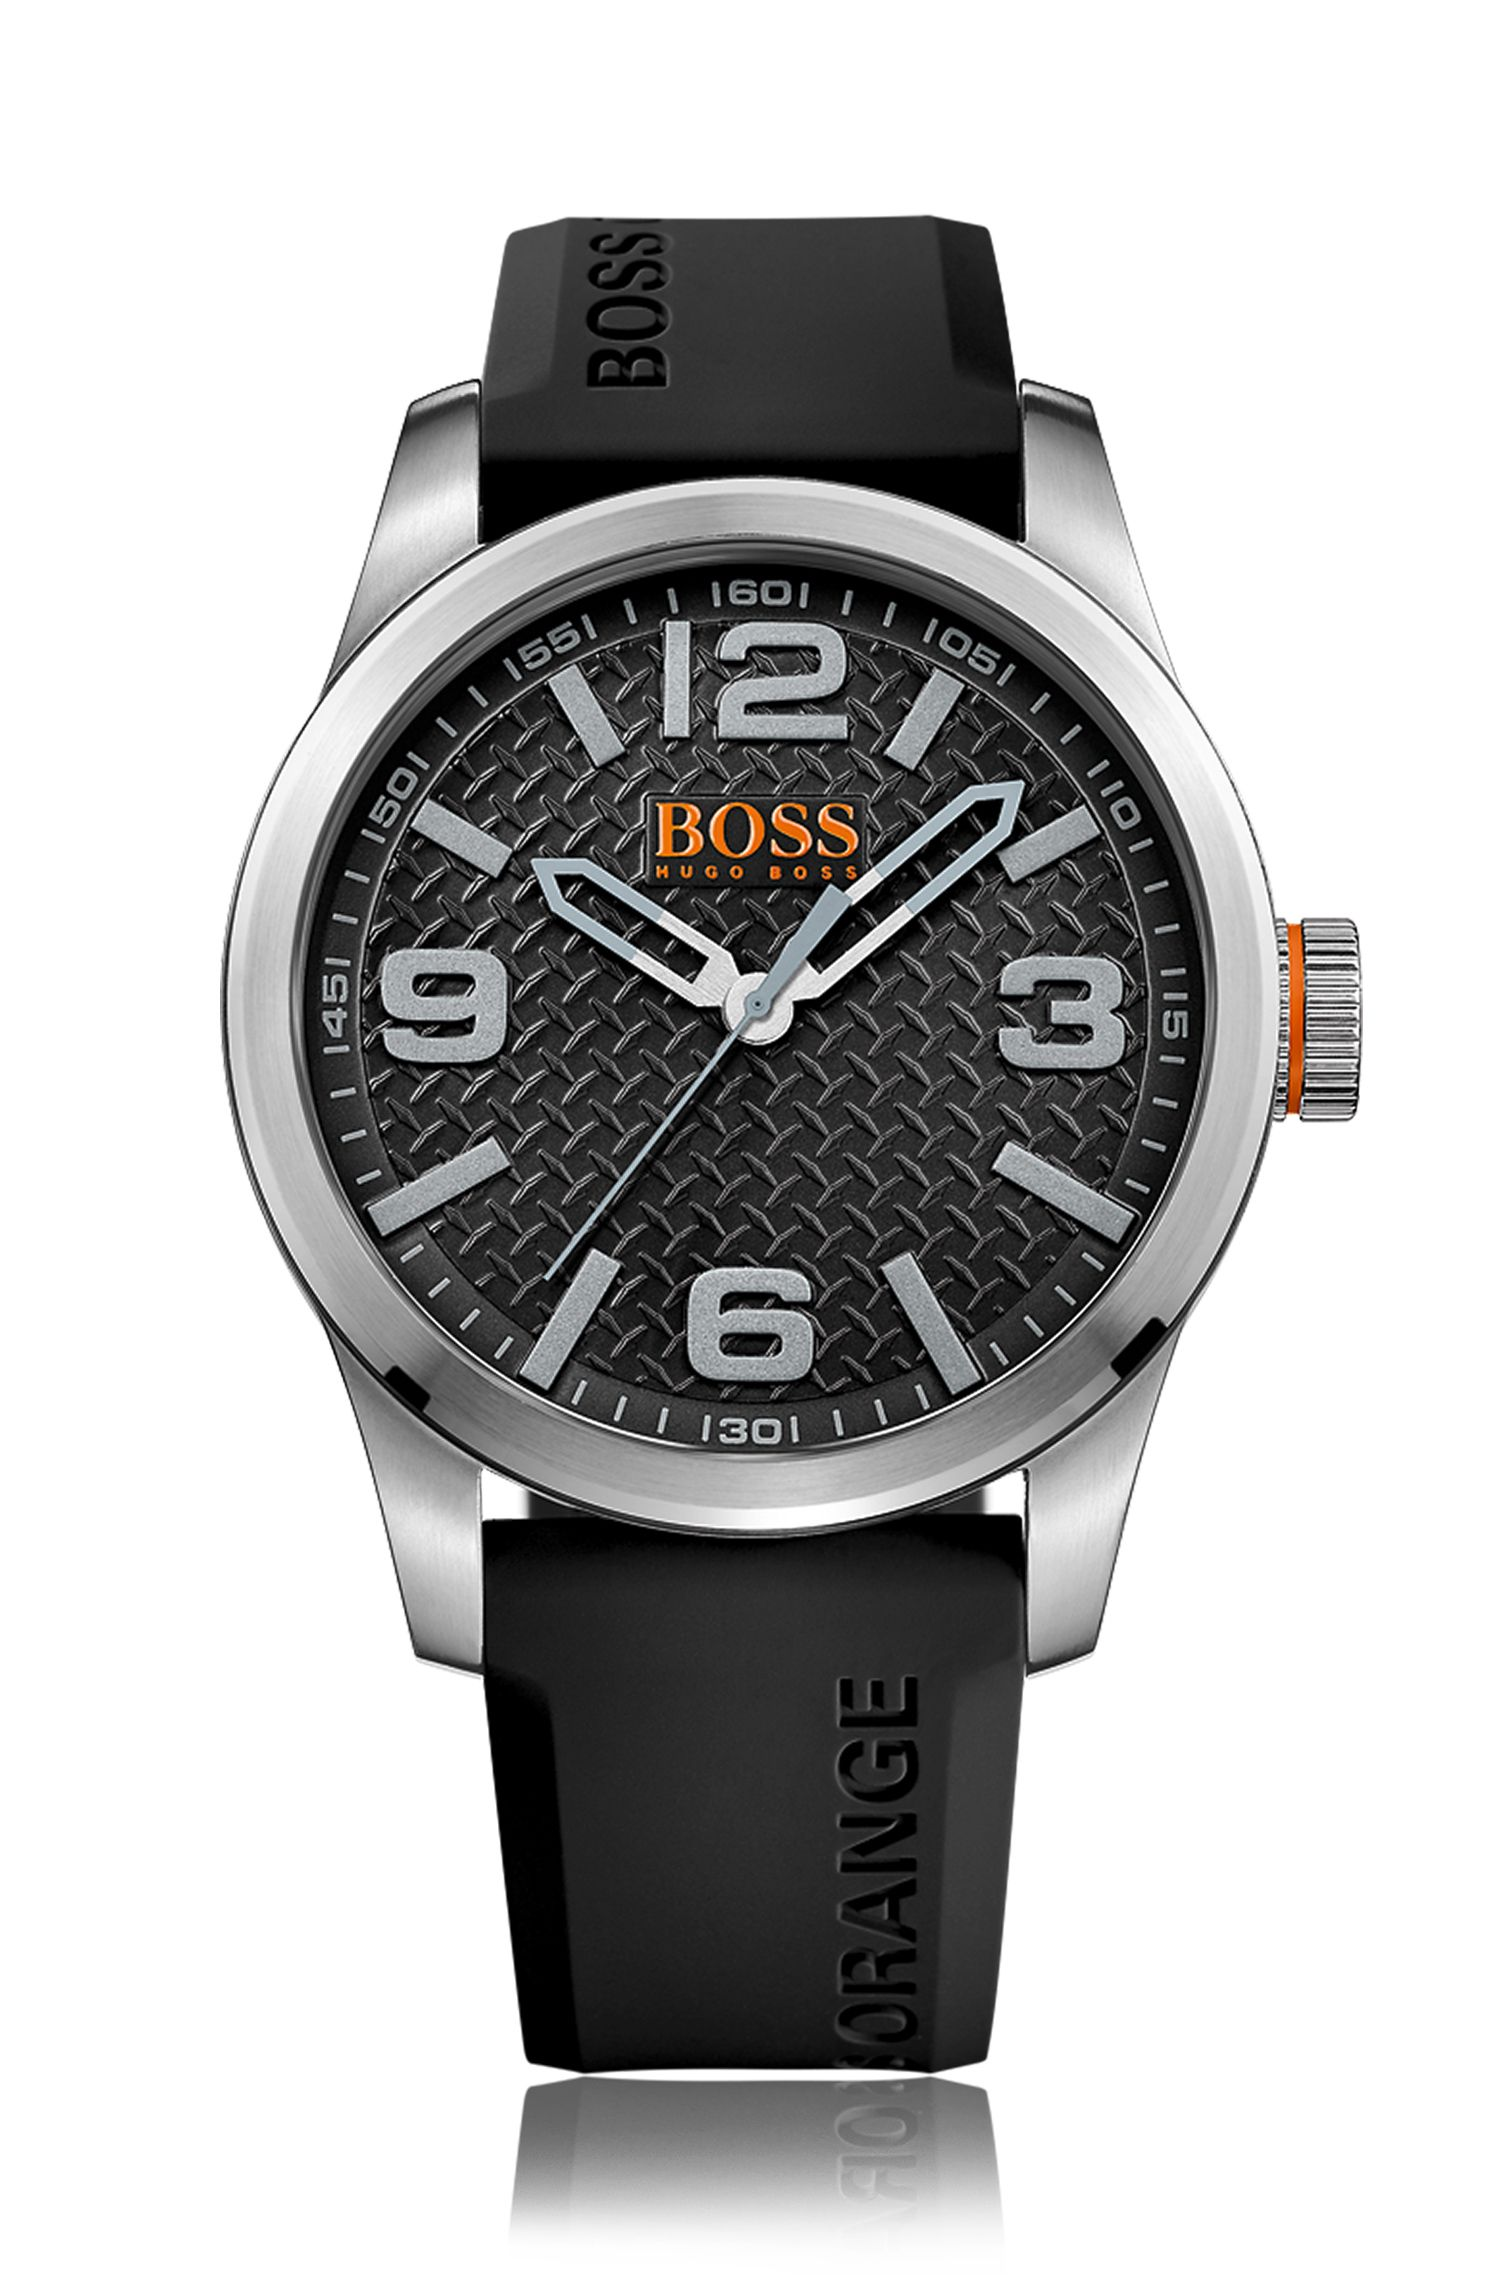 Stainless-steel three-hand watch with black textured dial and silicone strap